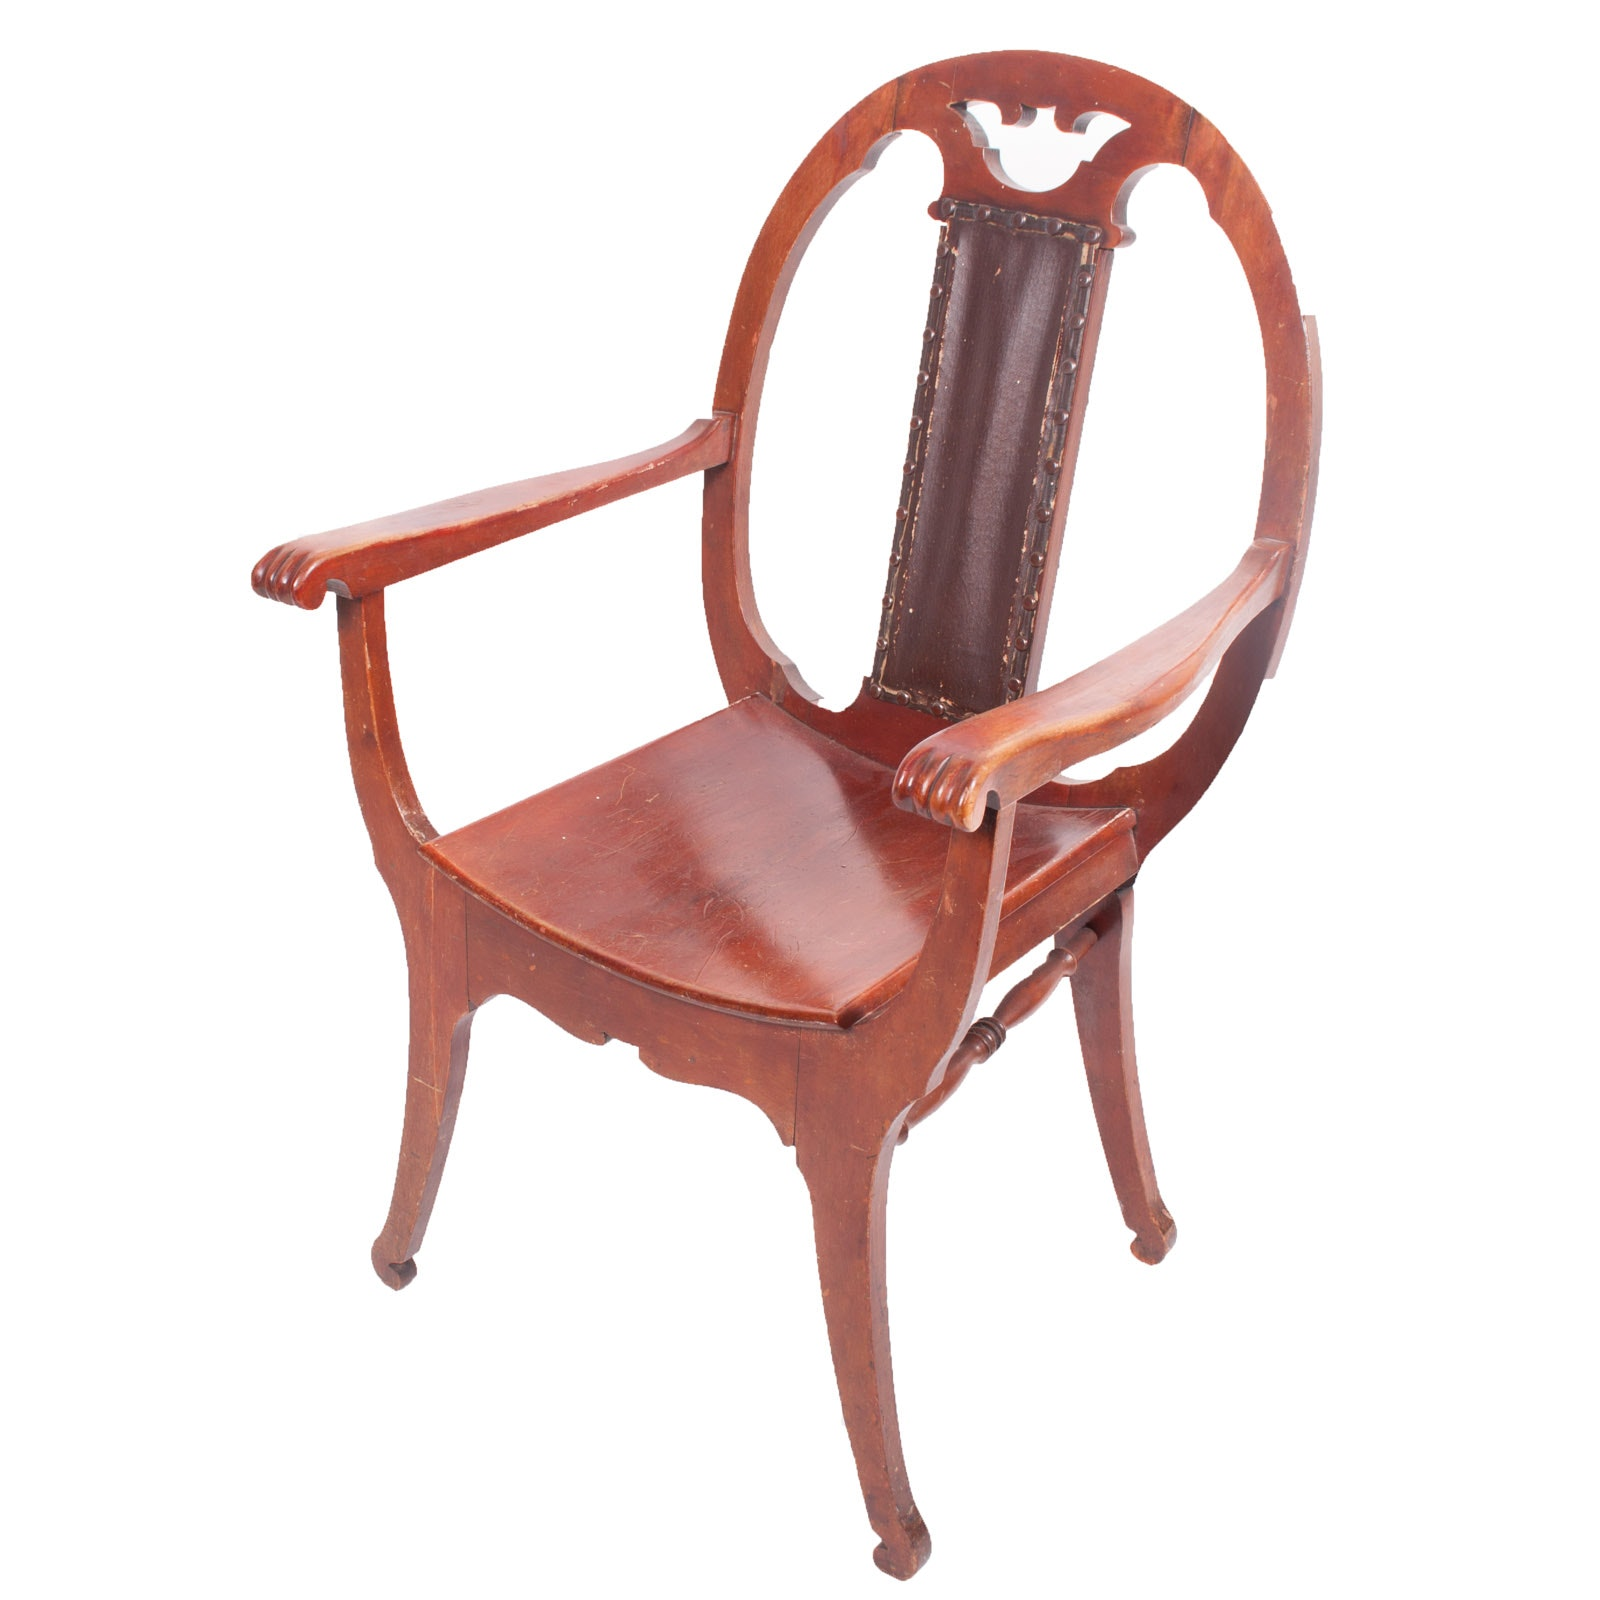 Antique Curule Style Armchair by H. C. Dexter Company